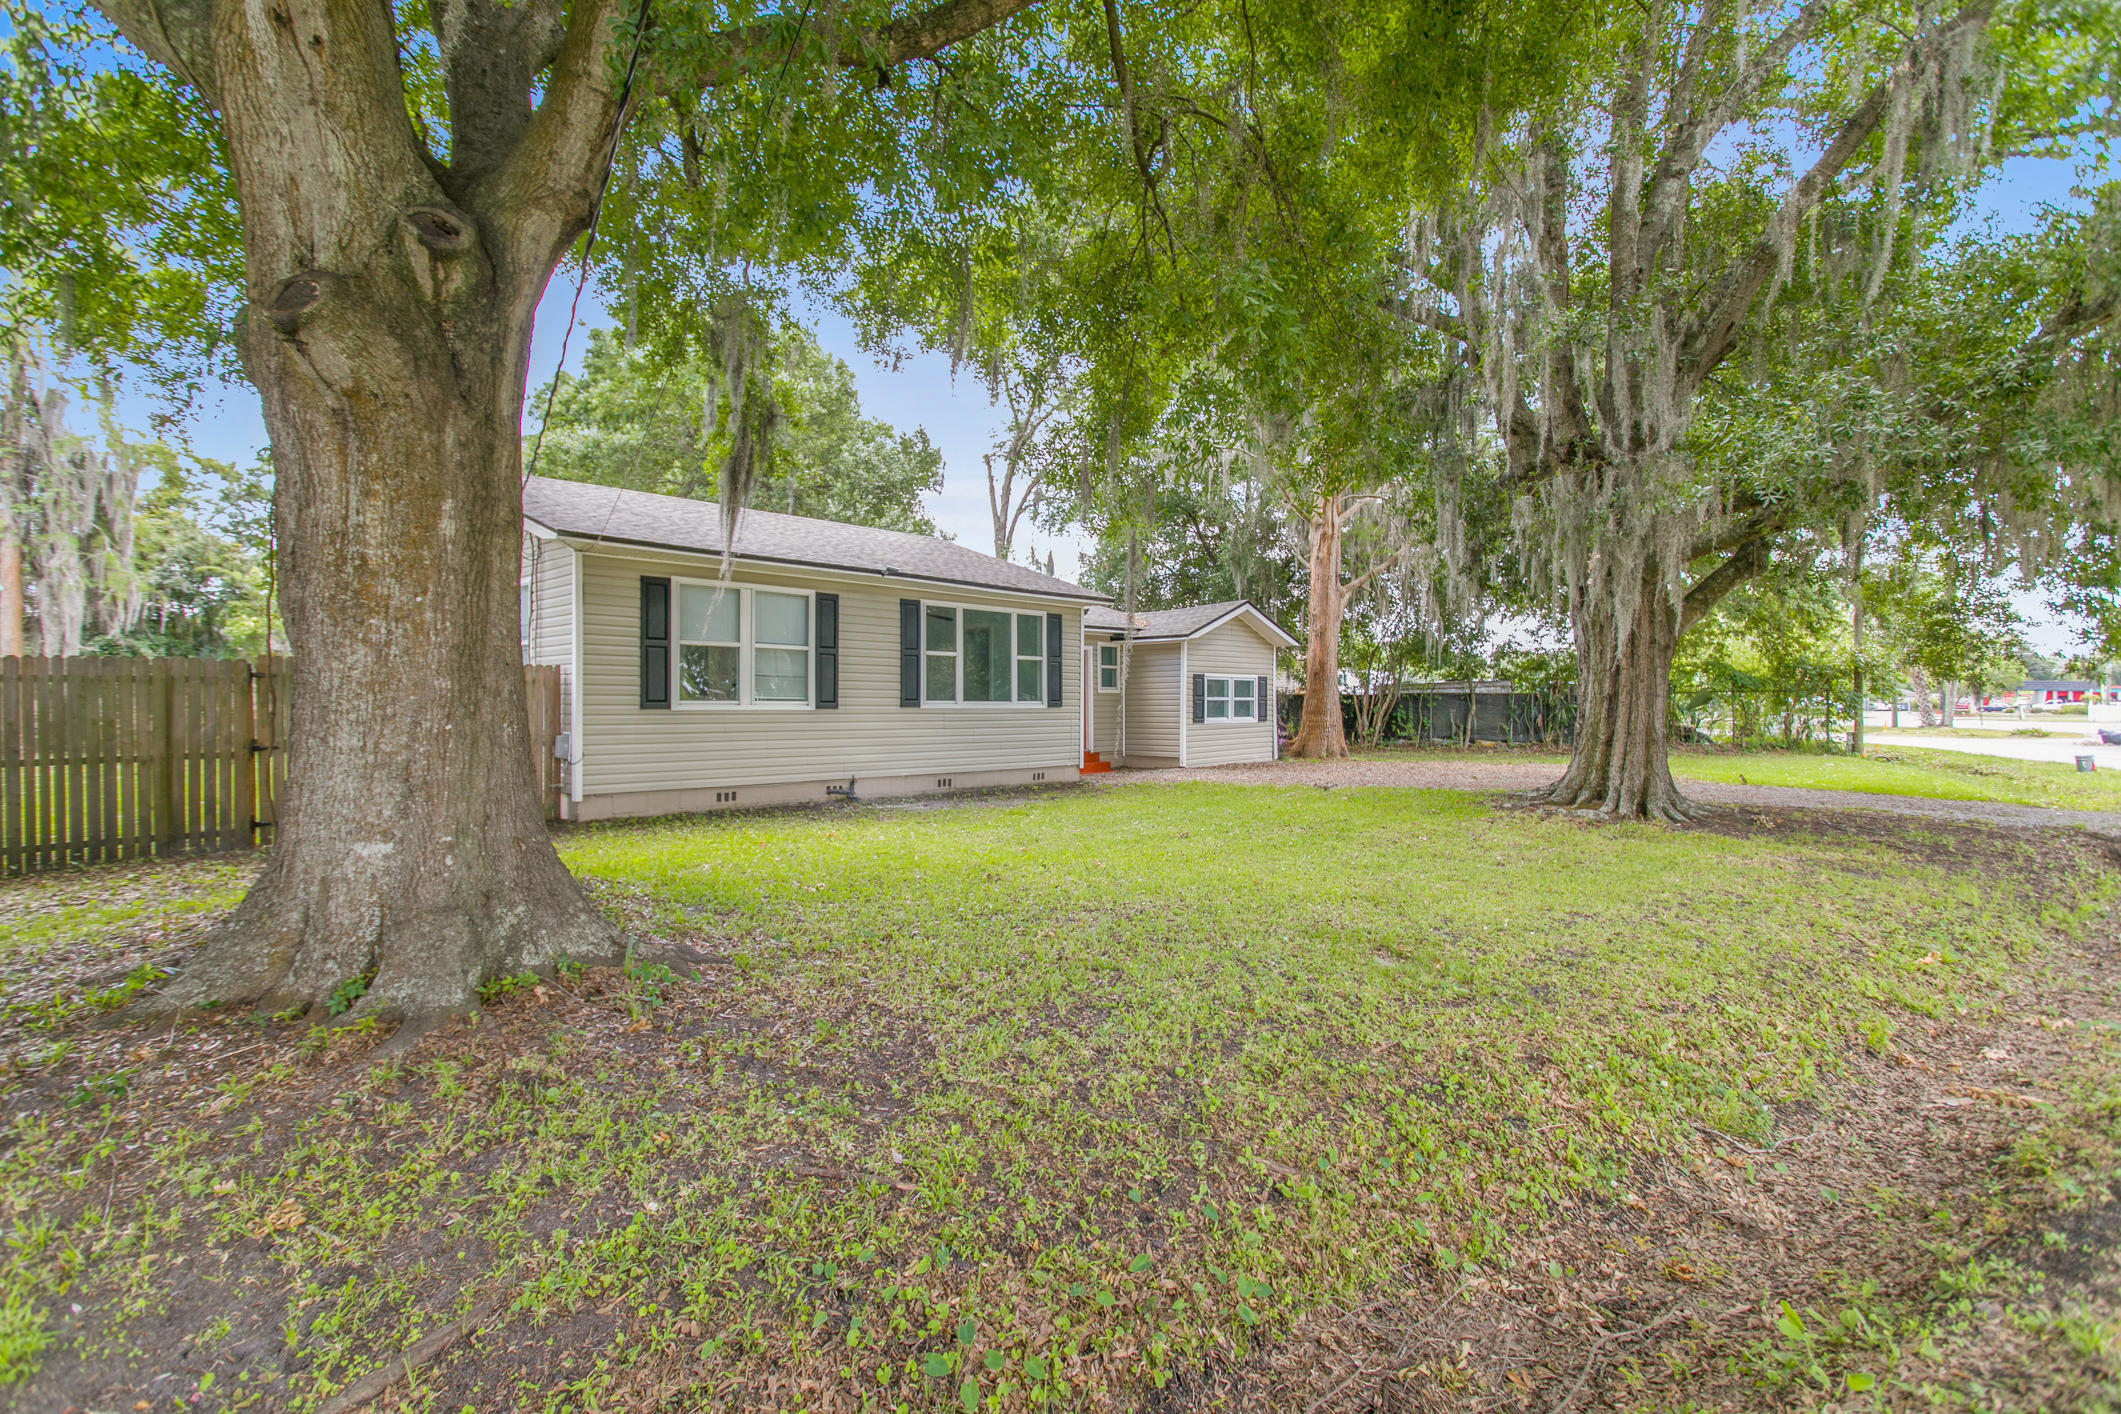 Welcome home to your freshly refinished Jacksonville bungalow! There's a lot to love about an older home that's been remodeled, you have those great bones...fantastic hardwood floors, fresh paint and a large, fenced yard and it's all waiting for you to make your offer. 2018 - New AC/Roof/Floors/Windows and Kitchen and Bath updated.  Low maintenance vinyl siding.   Great opportunity to make this your home or office or both because of the commercial zoning - CCG2.  Conveniently located to interstate, shopping and restaurants so don't let this one get away...come see it and make your offer today!